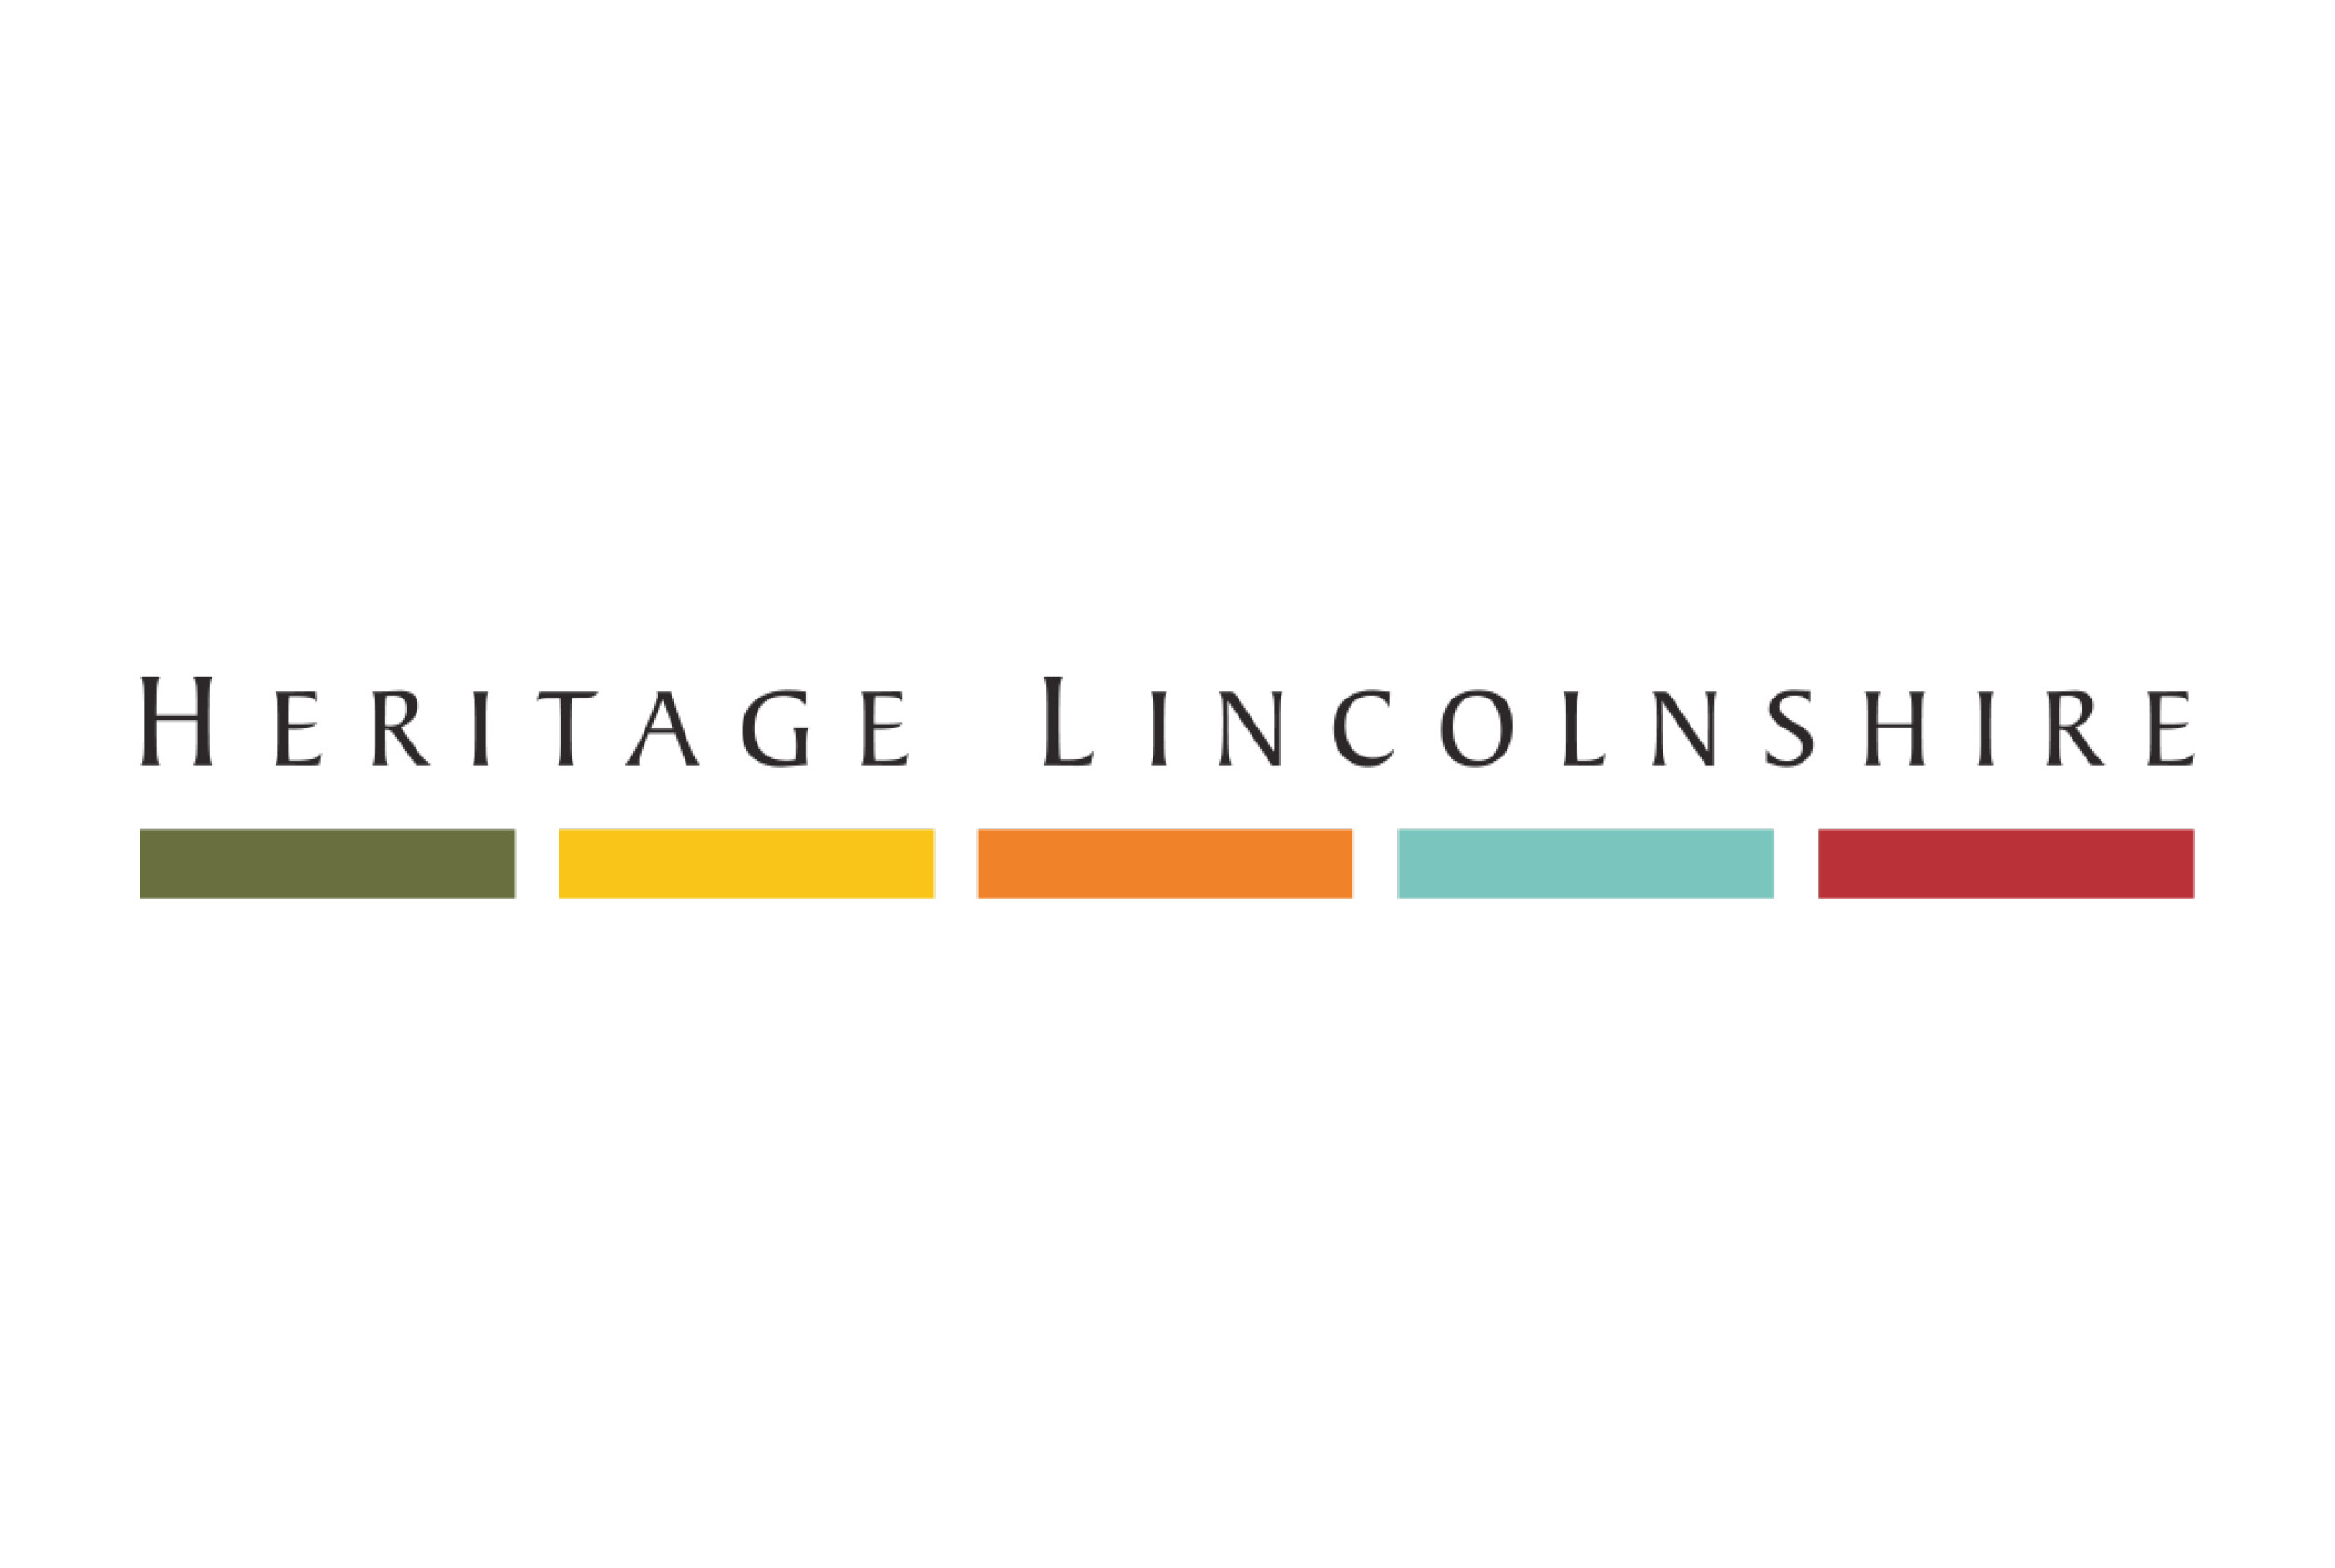 Heritage Lincolnshire